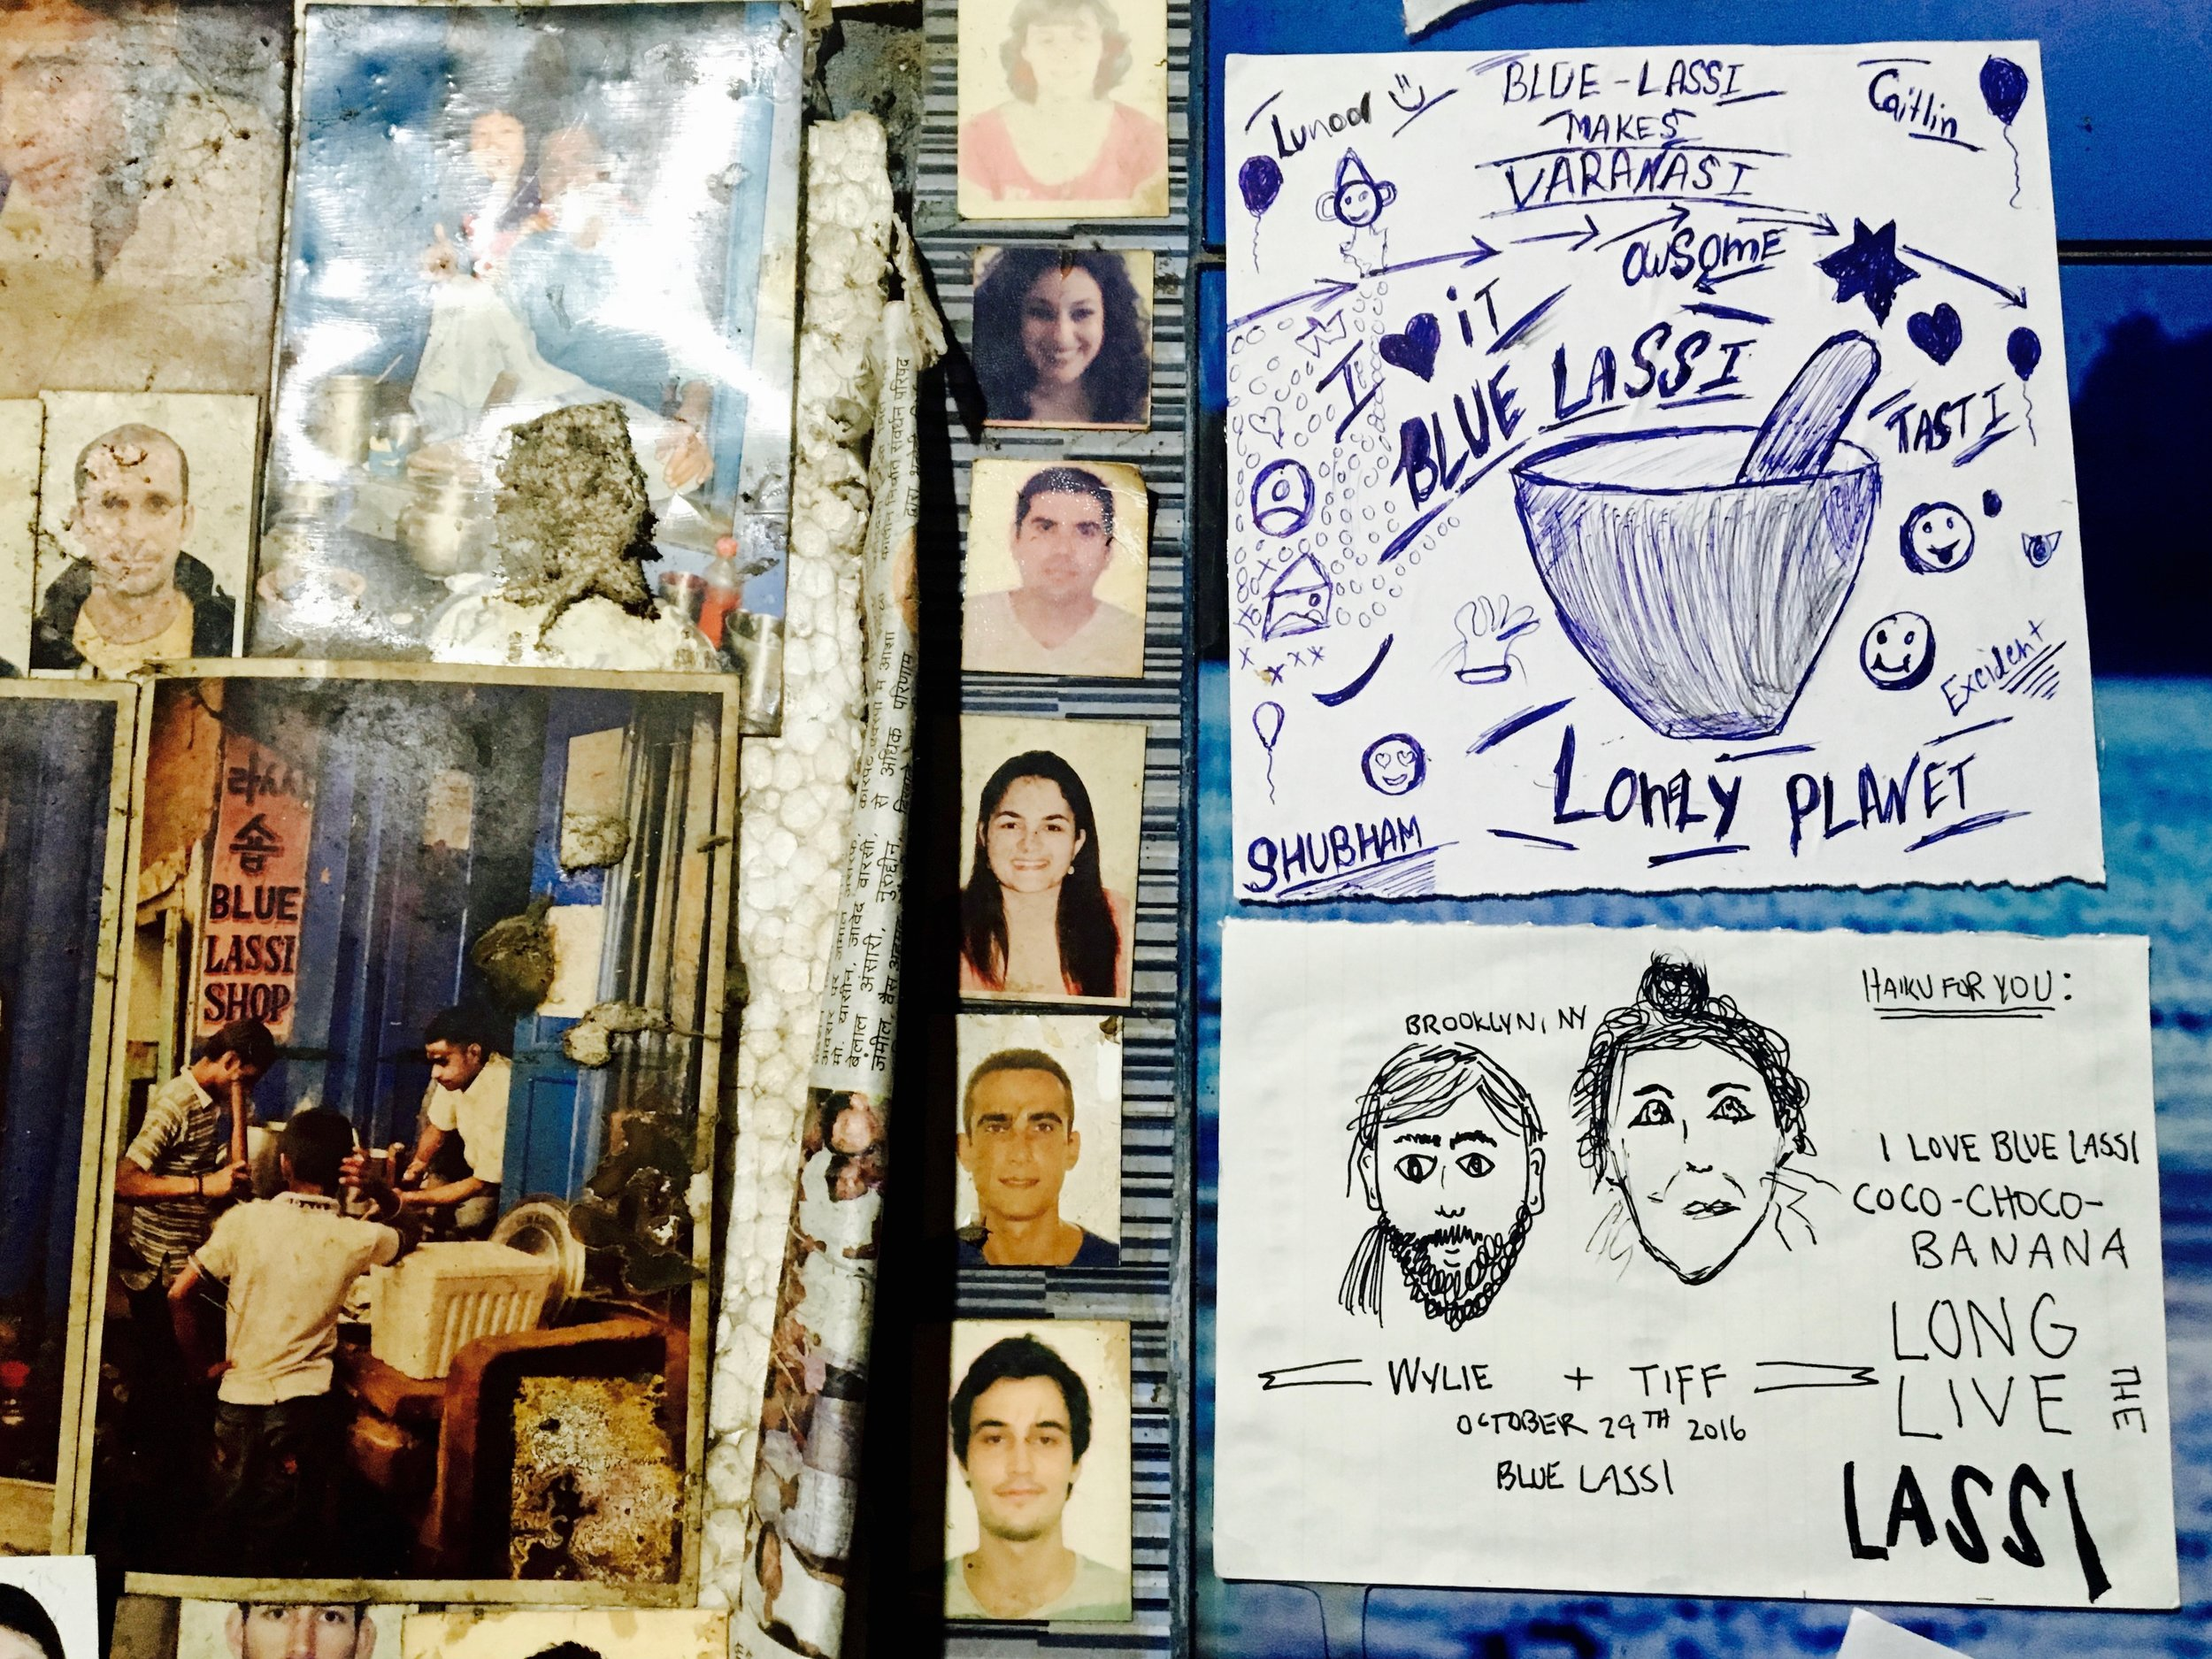 The little hole in the wall that is Blue Lassi Shop was plastered from head to toe in passport photos. We decided to leave a little memento in the form of hand drawn faces and a haiku.